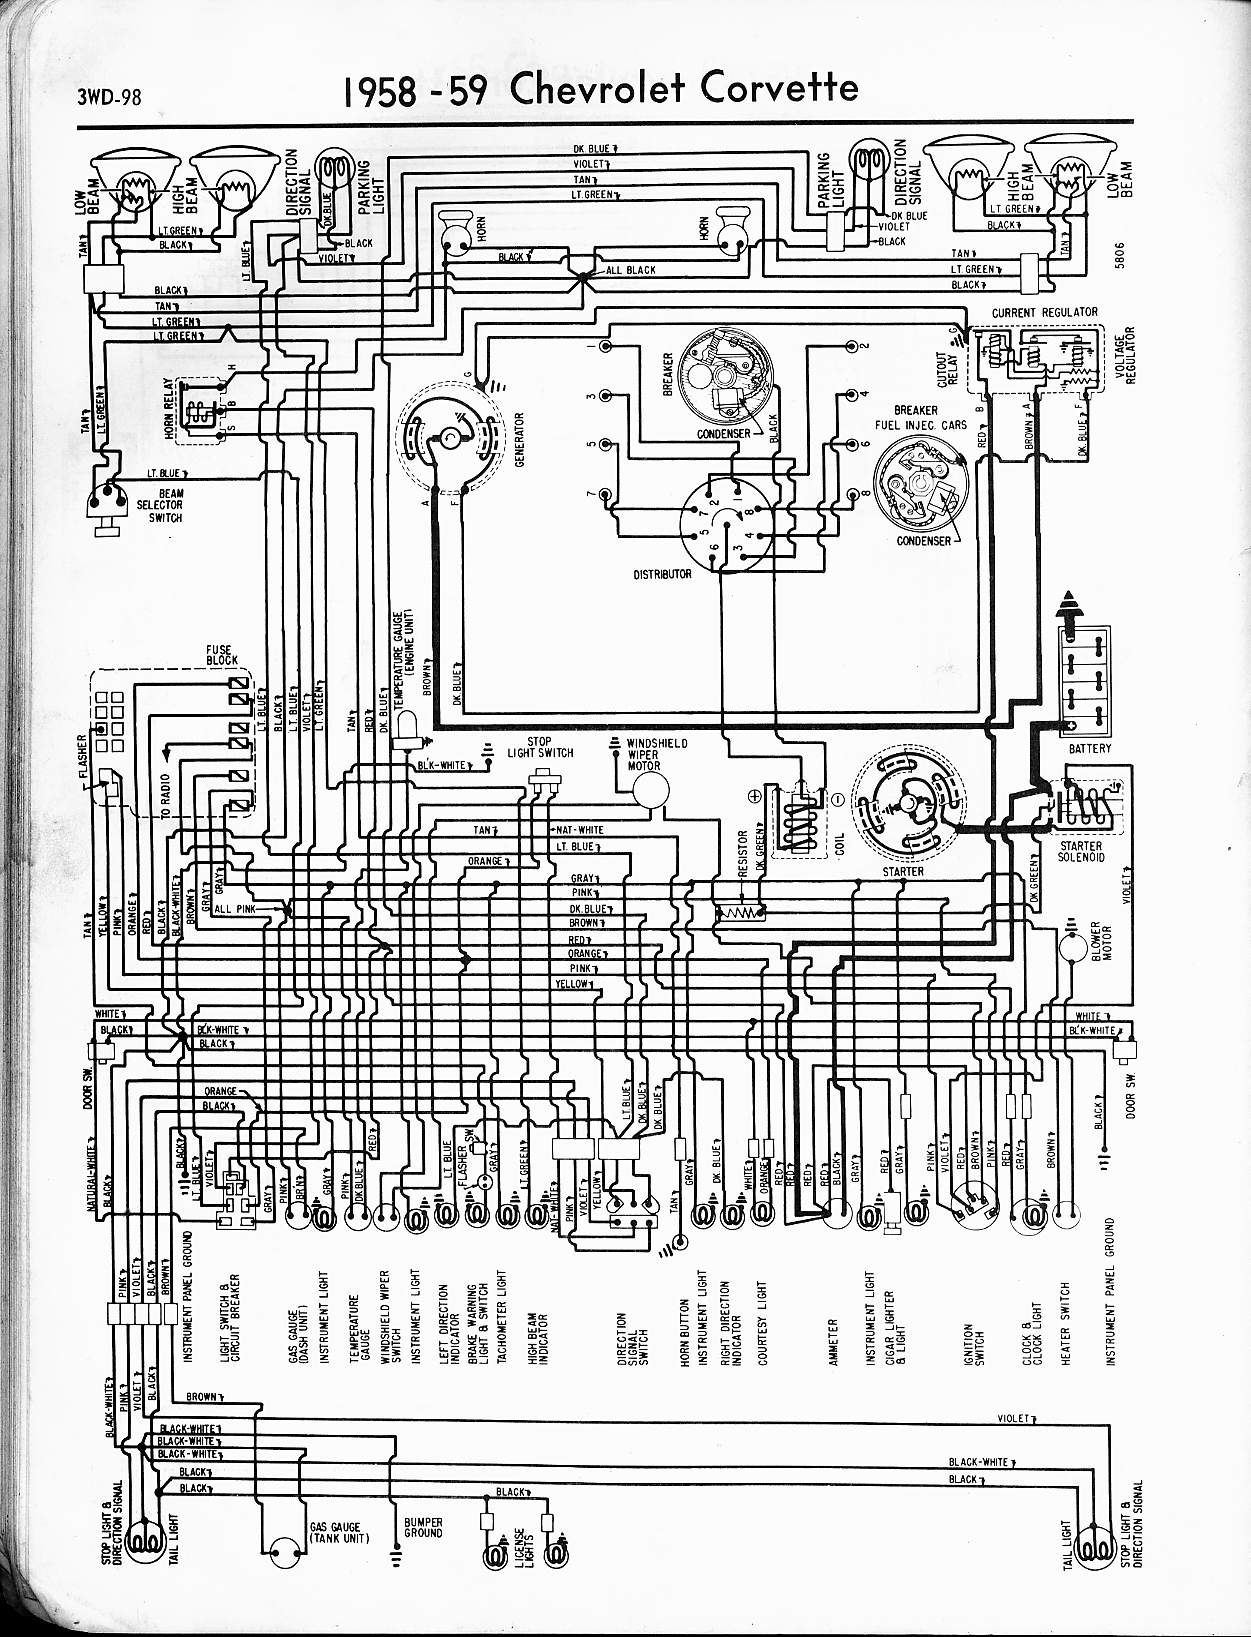 1959 chevy impala ignition wiring diagram complete wiring diagrams u2022 rh sammich co 1968 Chevelle Wiring Diagram 1962 Impala Wiring Diagram